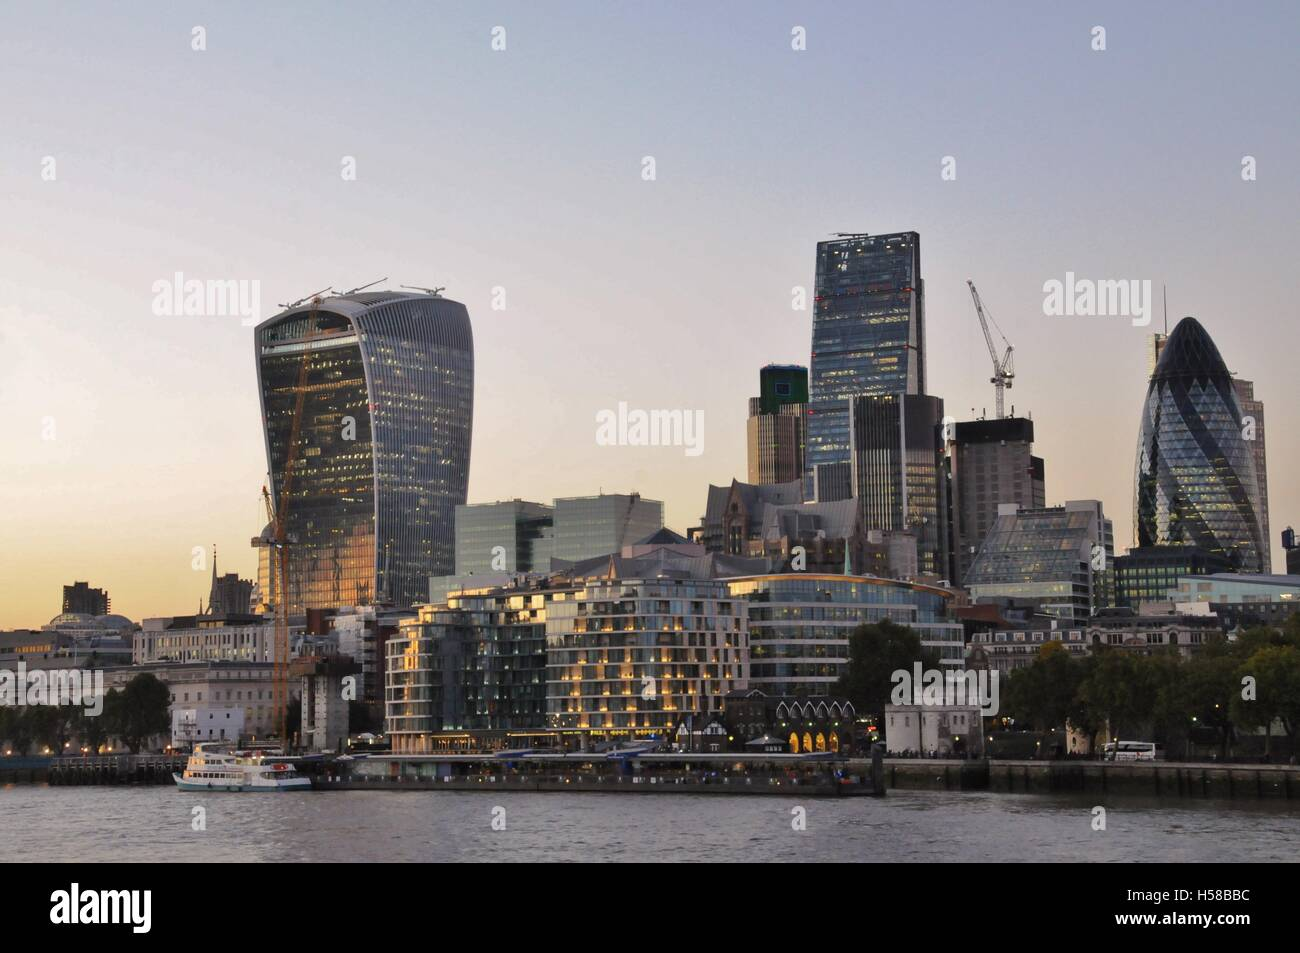 The City of London's financial district. - Stock Image